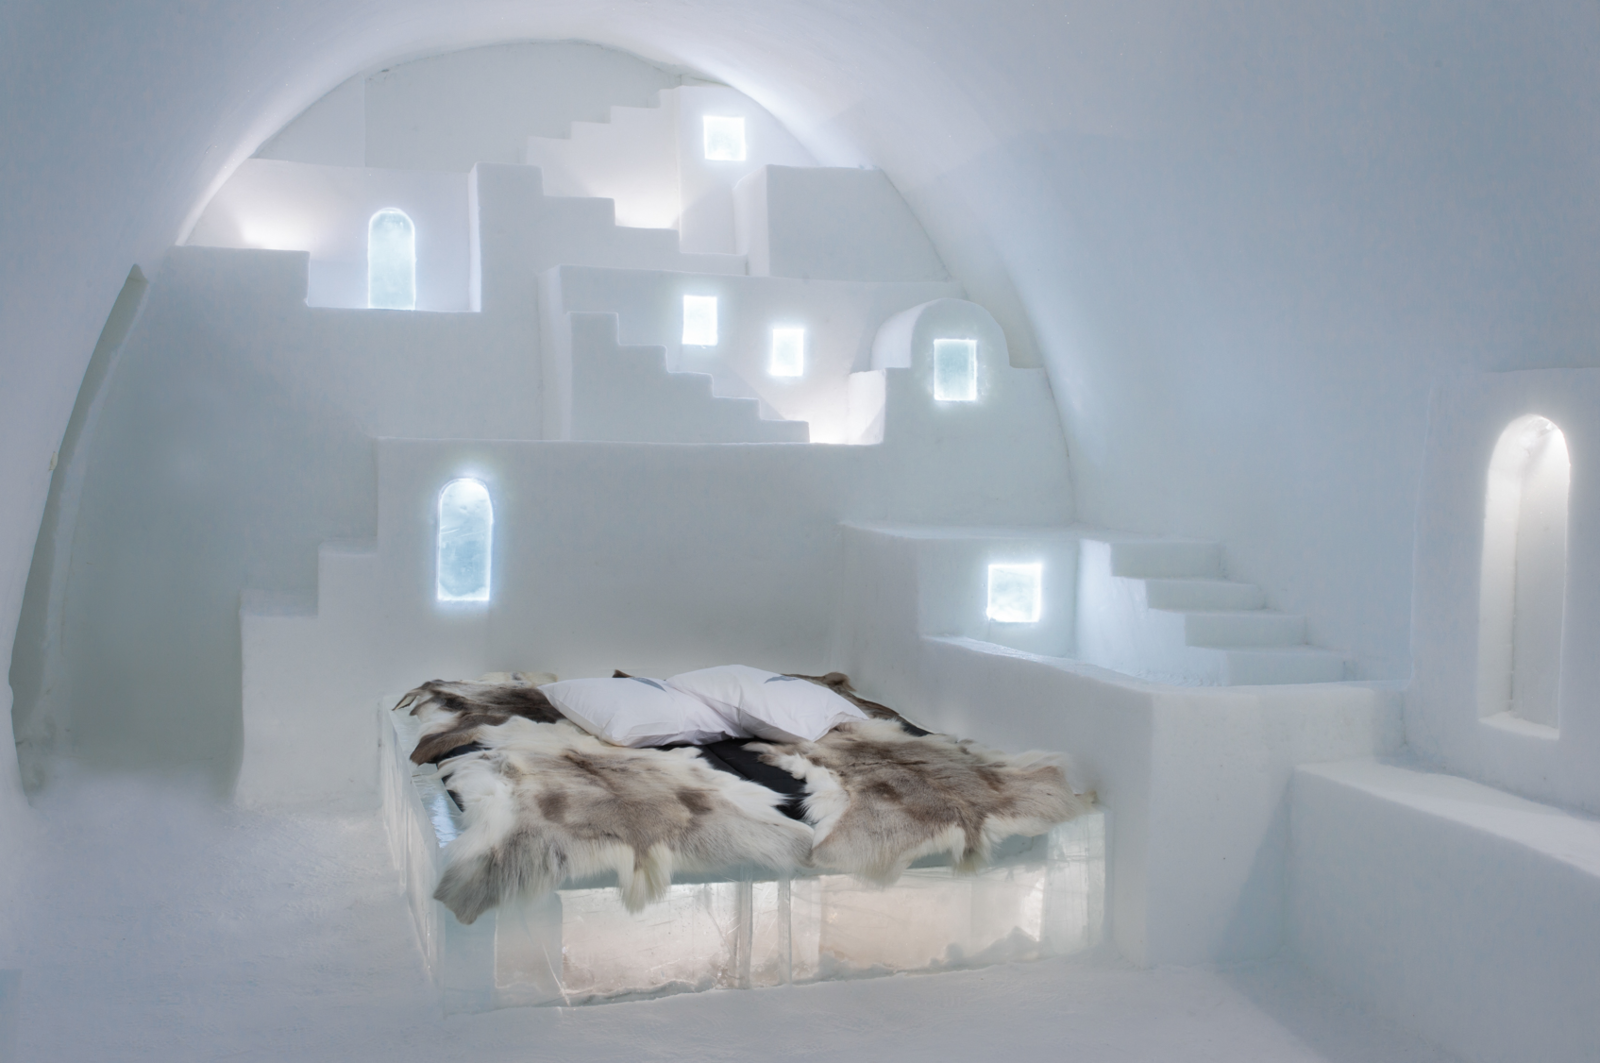 ❄️Check Out This Chilling Design at Sweden's Icehotel! icehotel ❄️Check Out This Chilling Design at Sweden's Icehotel! 8